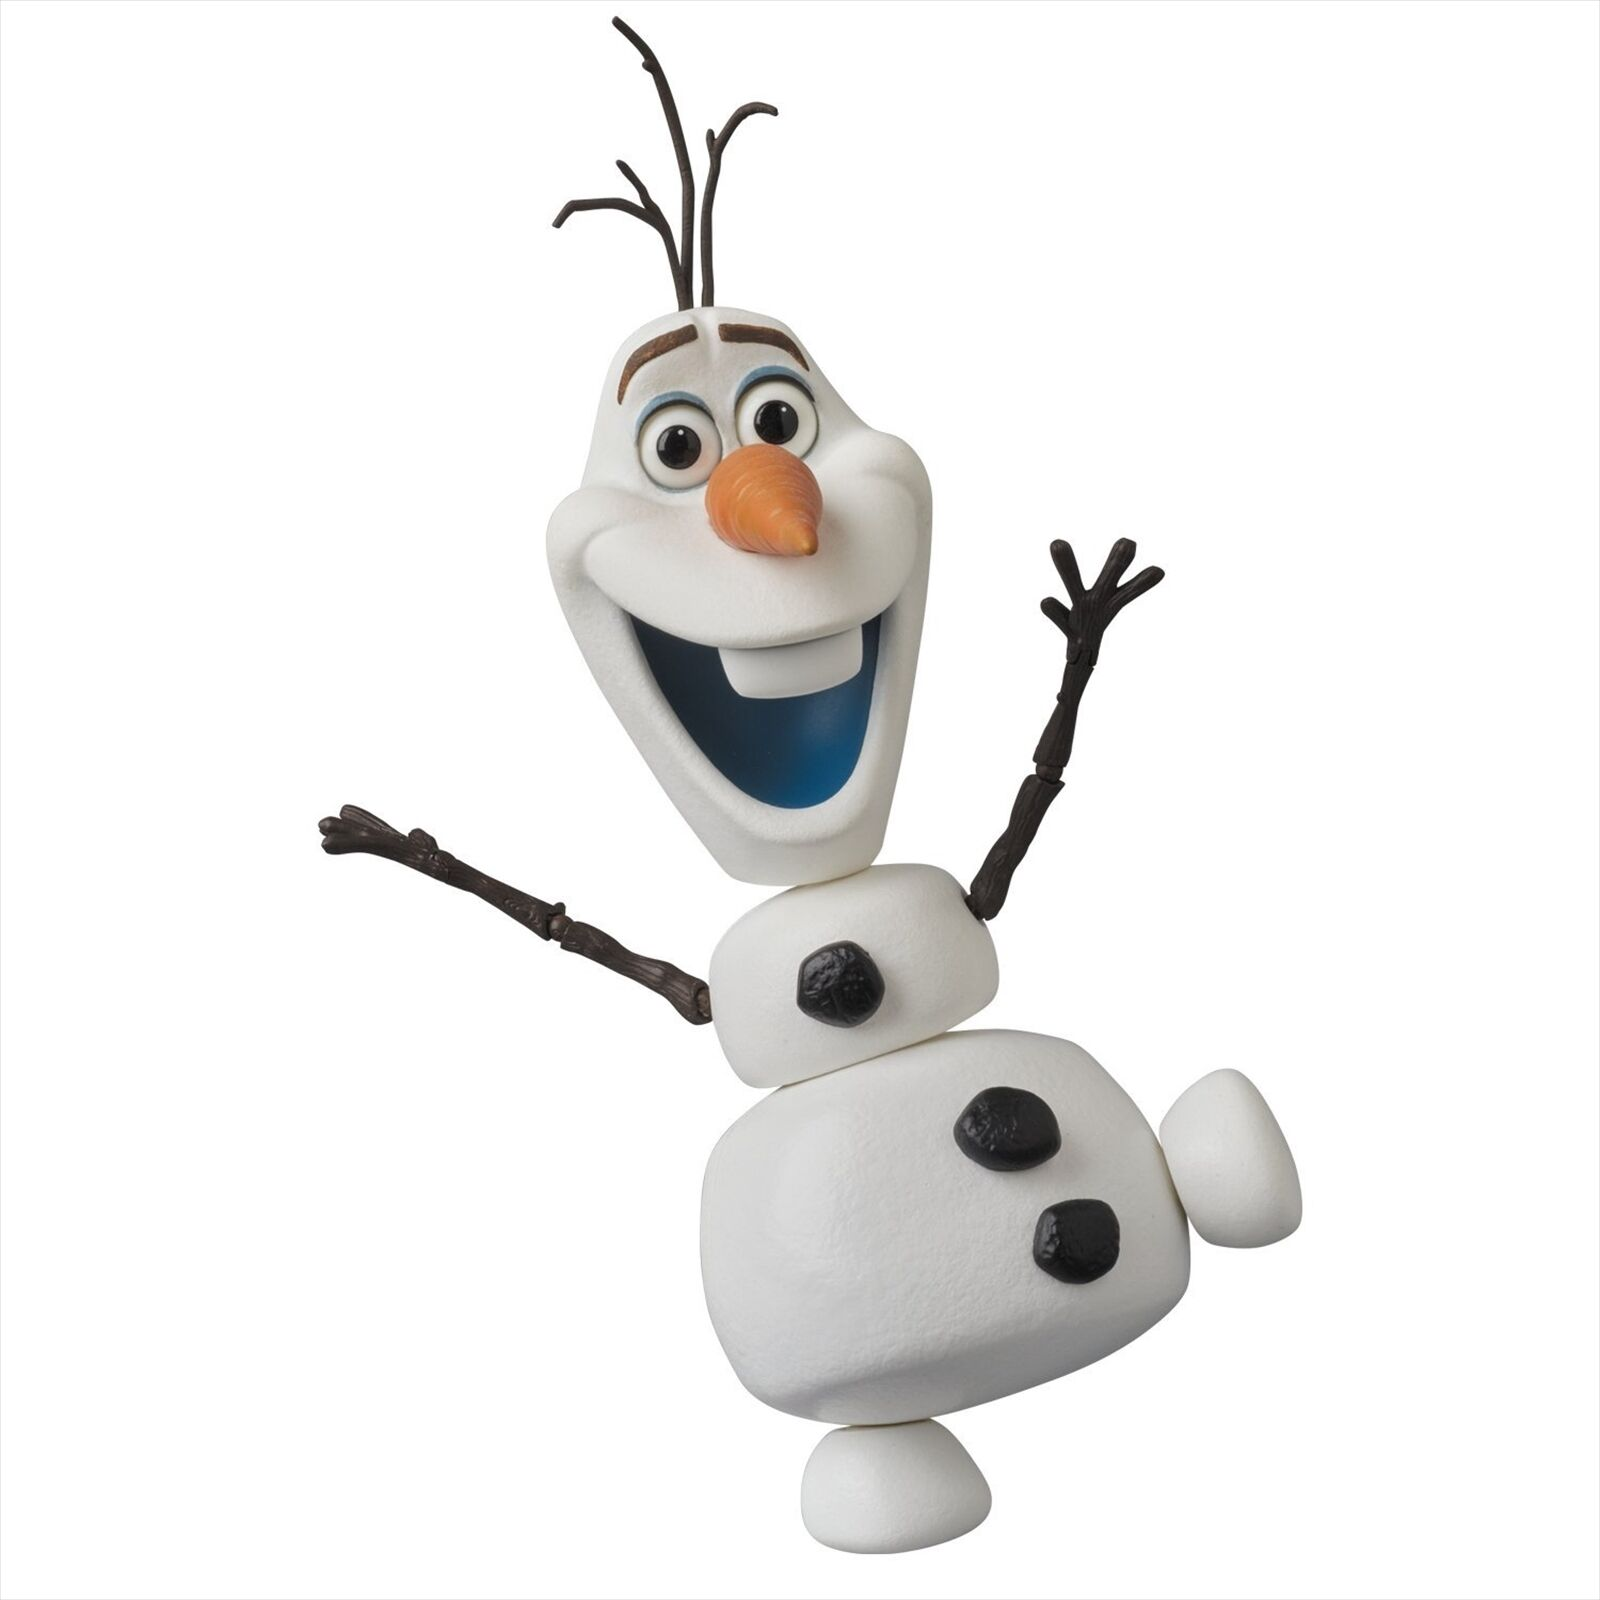 Medicom Toy MAFEX Olaf Frozen Action Figure